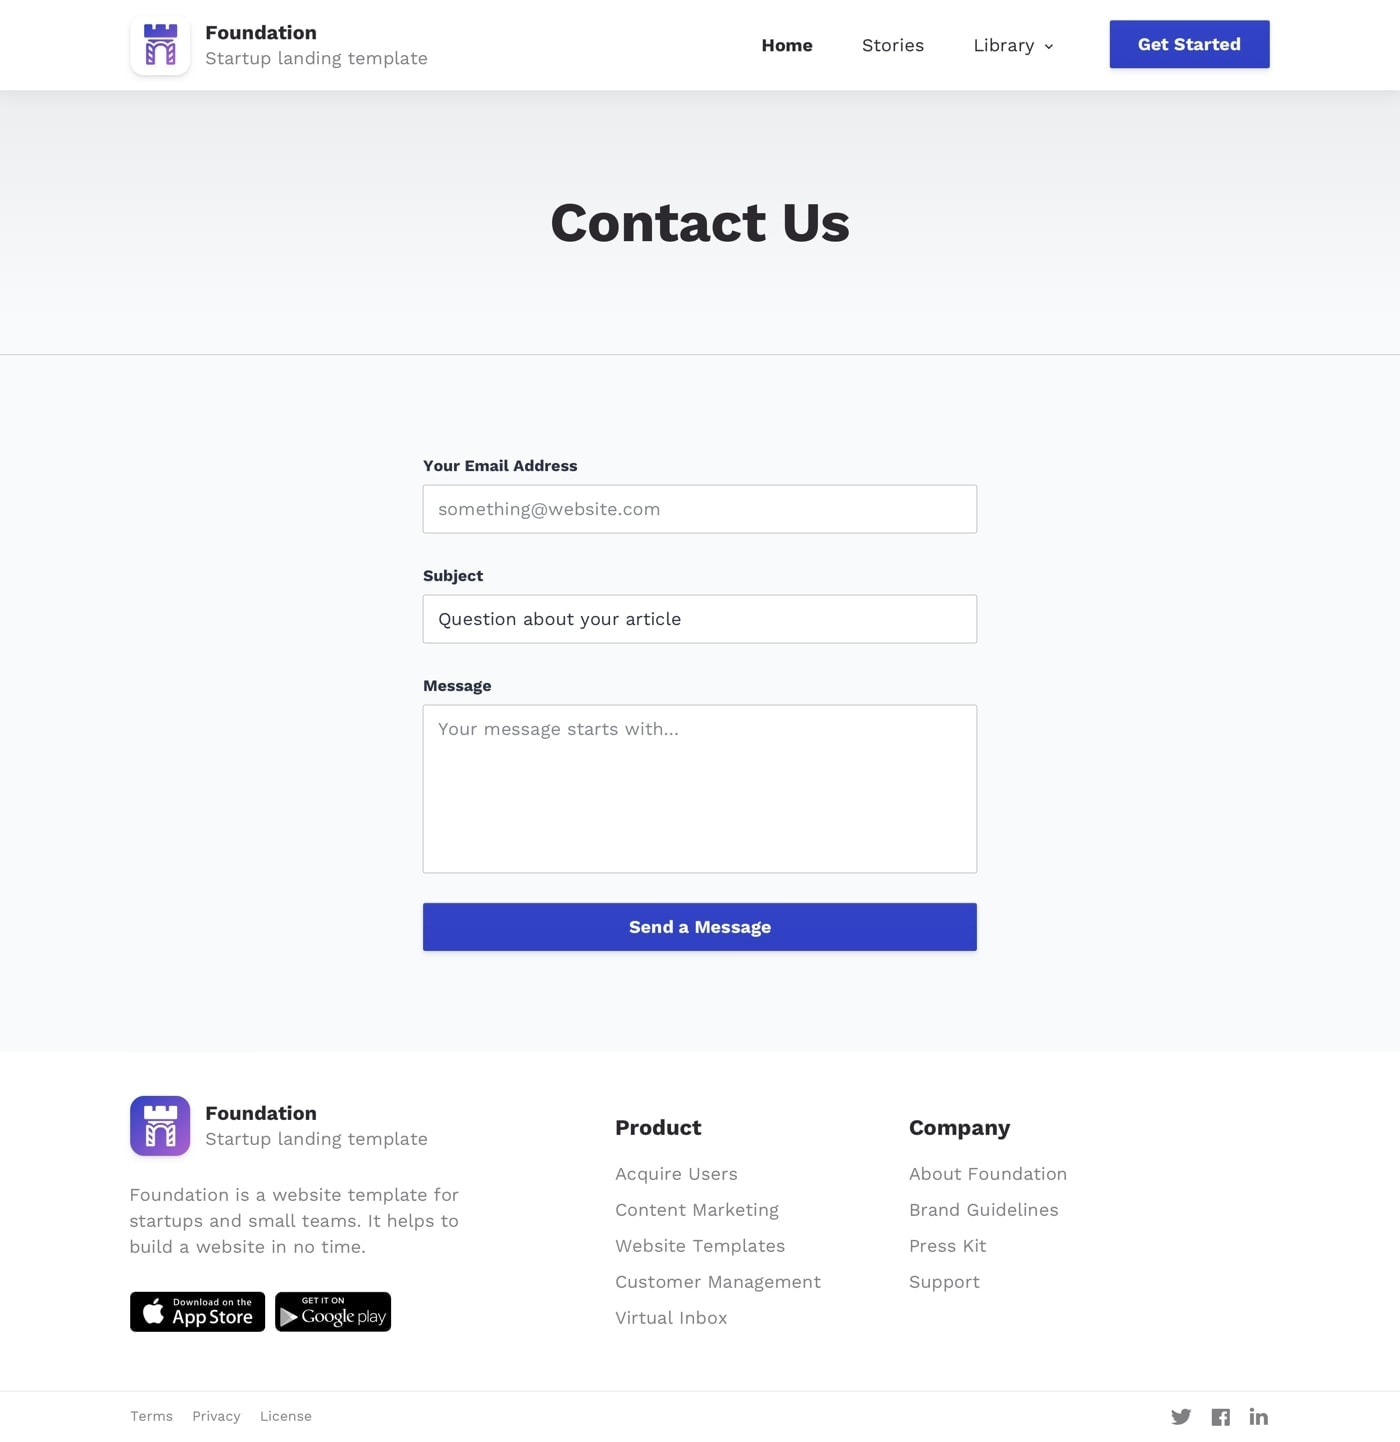 Foundation - Free Landing Page Design from UIGarage